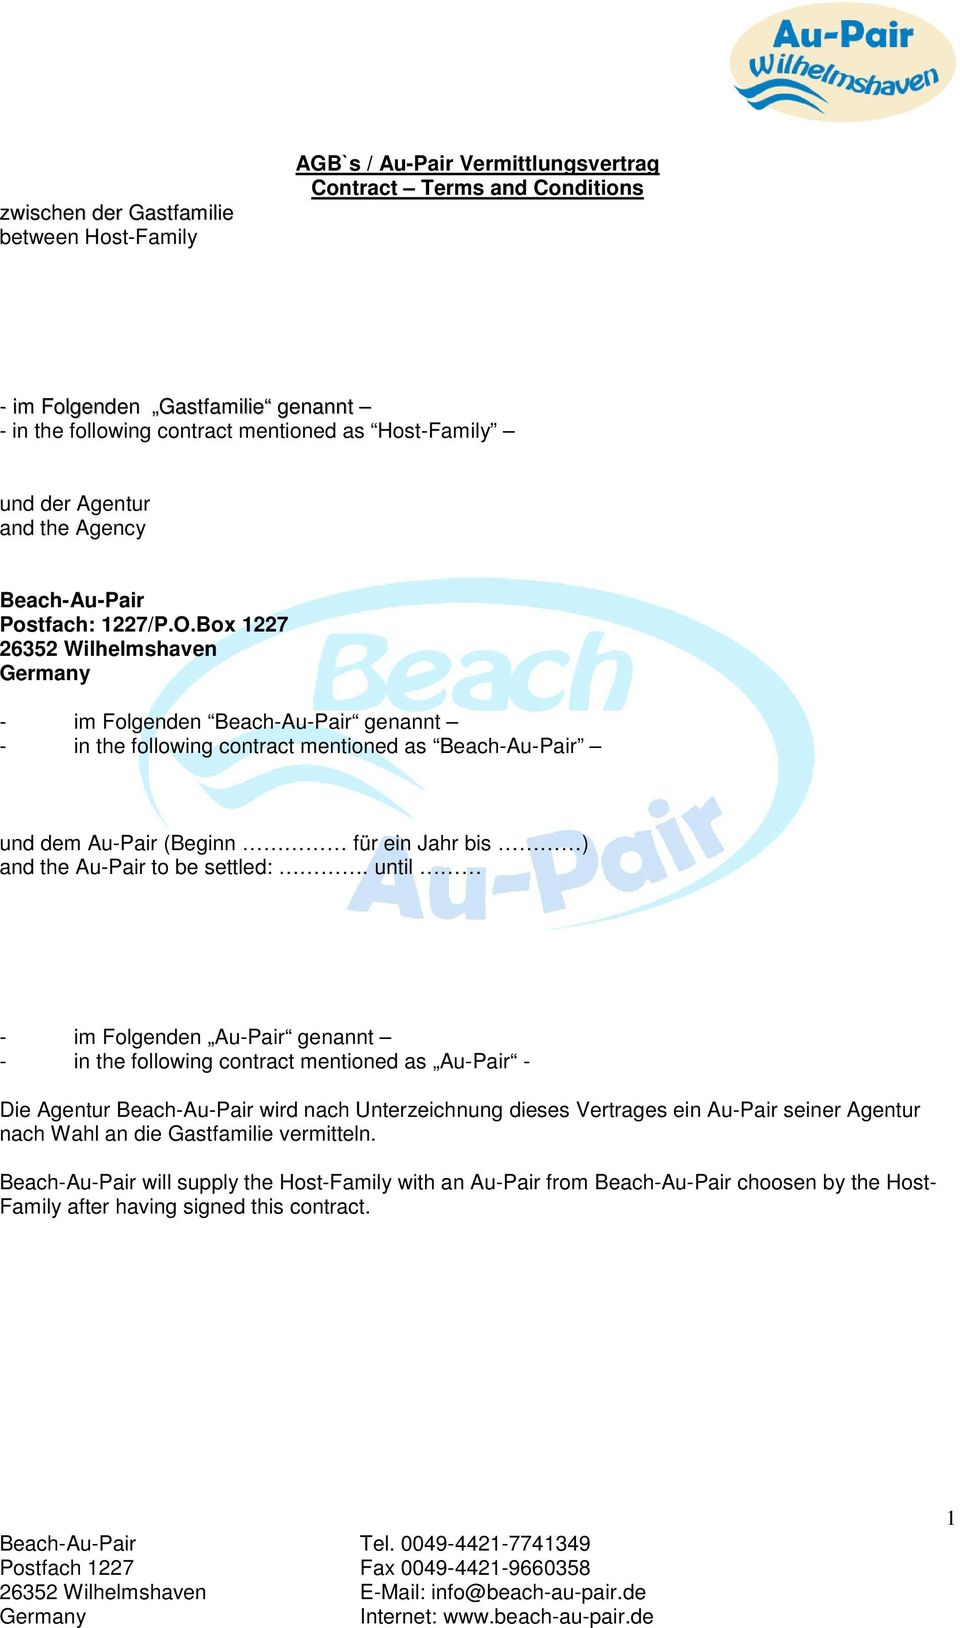 Box 1227 26352 Wilhelmshaven - im Folgenden Beach-Au-Pair genannt - in the following contract mentioned as Beach-Au-Pair und dem Au-Pair (Beginn für ein Jahr bis ) and the Au-Pair to be settled:.